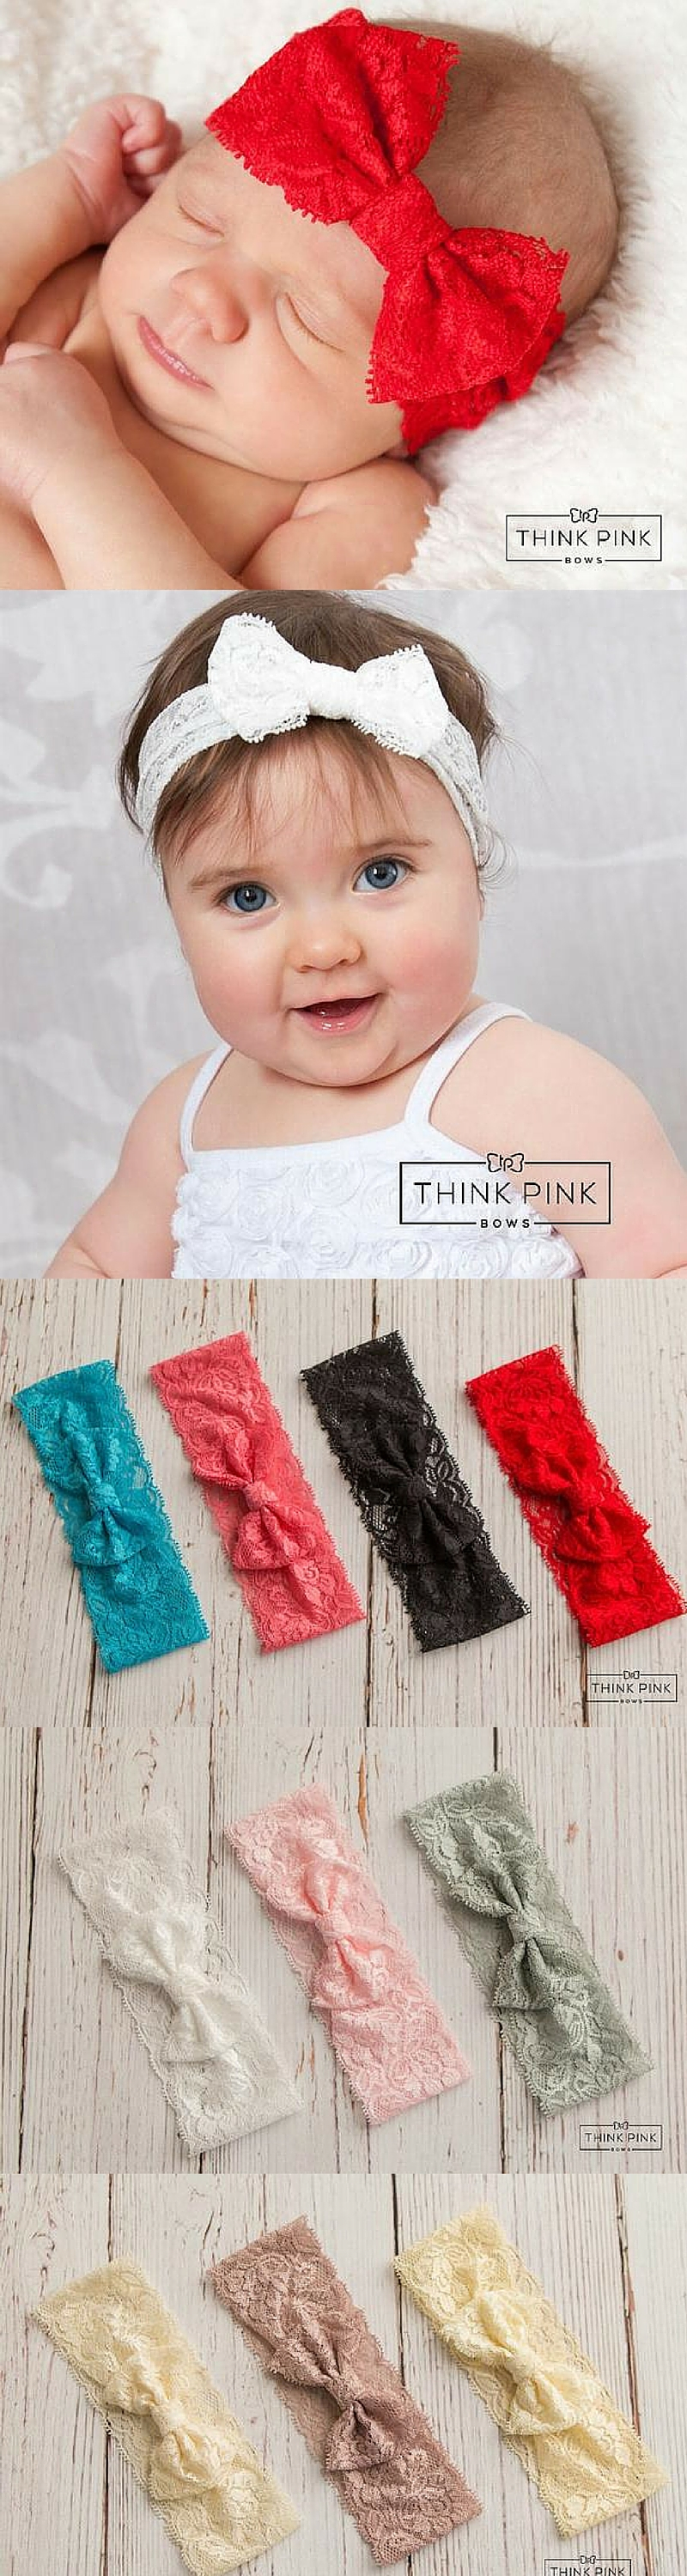 This headband for newborns is so cute, made from a gorgeous, stretchy lace, tied in a darling bow! Pair this elegant bow with one of our dresses perfect for any occasion and you'll soon see, this is one bug you won't want to squish! Explore hairbands at http://thinkpinkbows.com/collections/bow-headbands/products/little-love-bug-lace-bow-headband-10-colors-available?variant=11055560515 | Kids Fashion